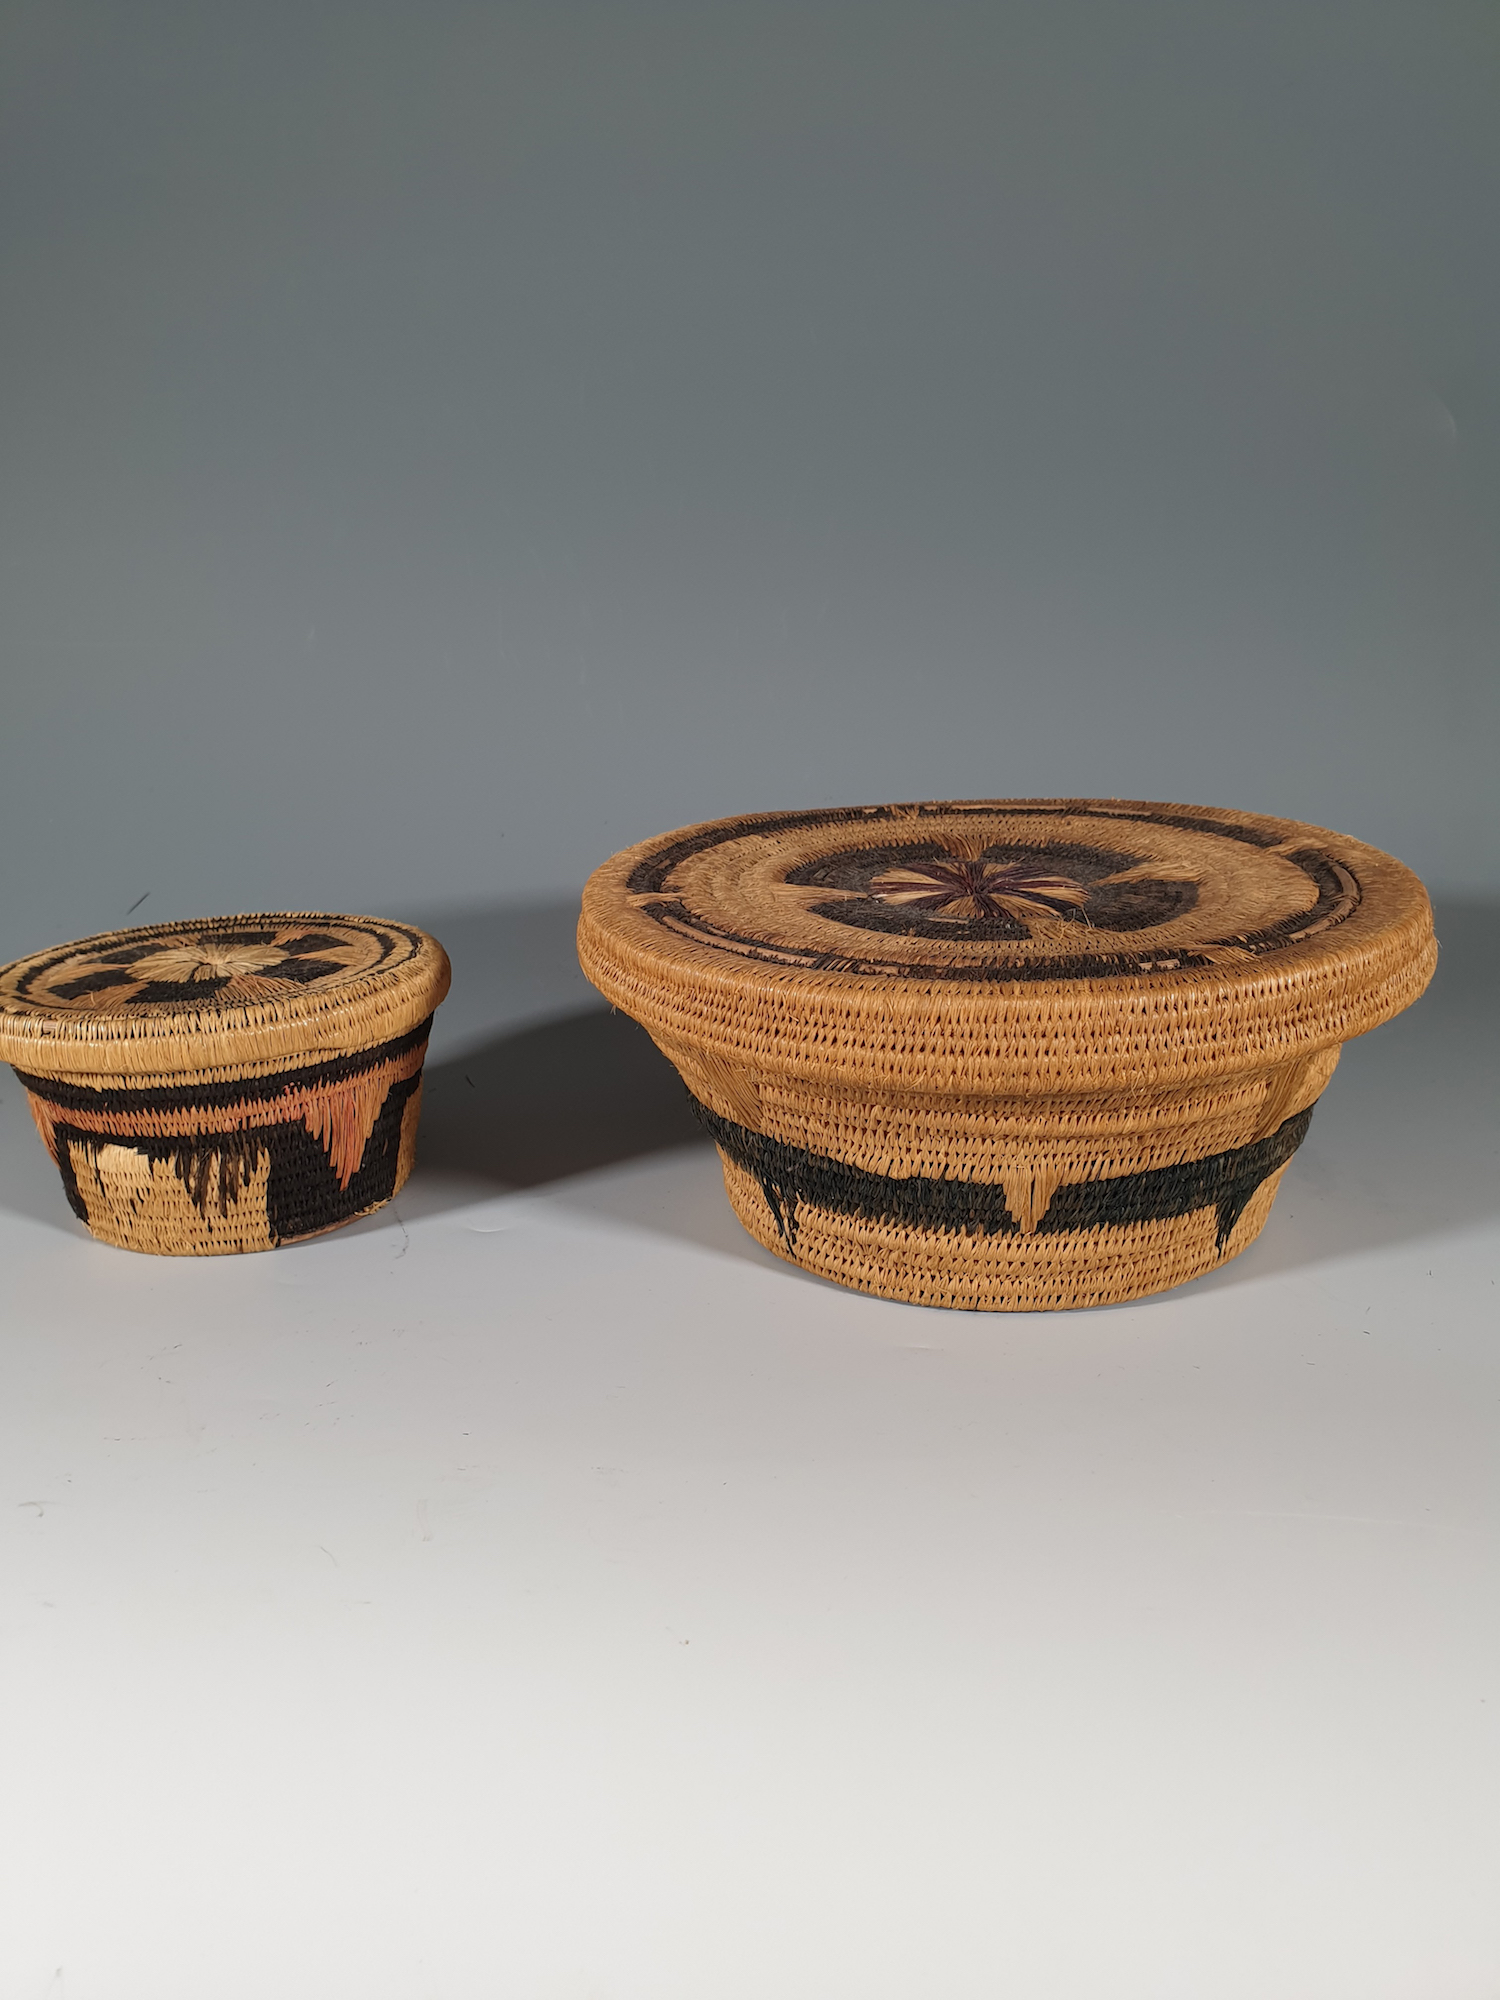 A pair of Kuba baskets